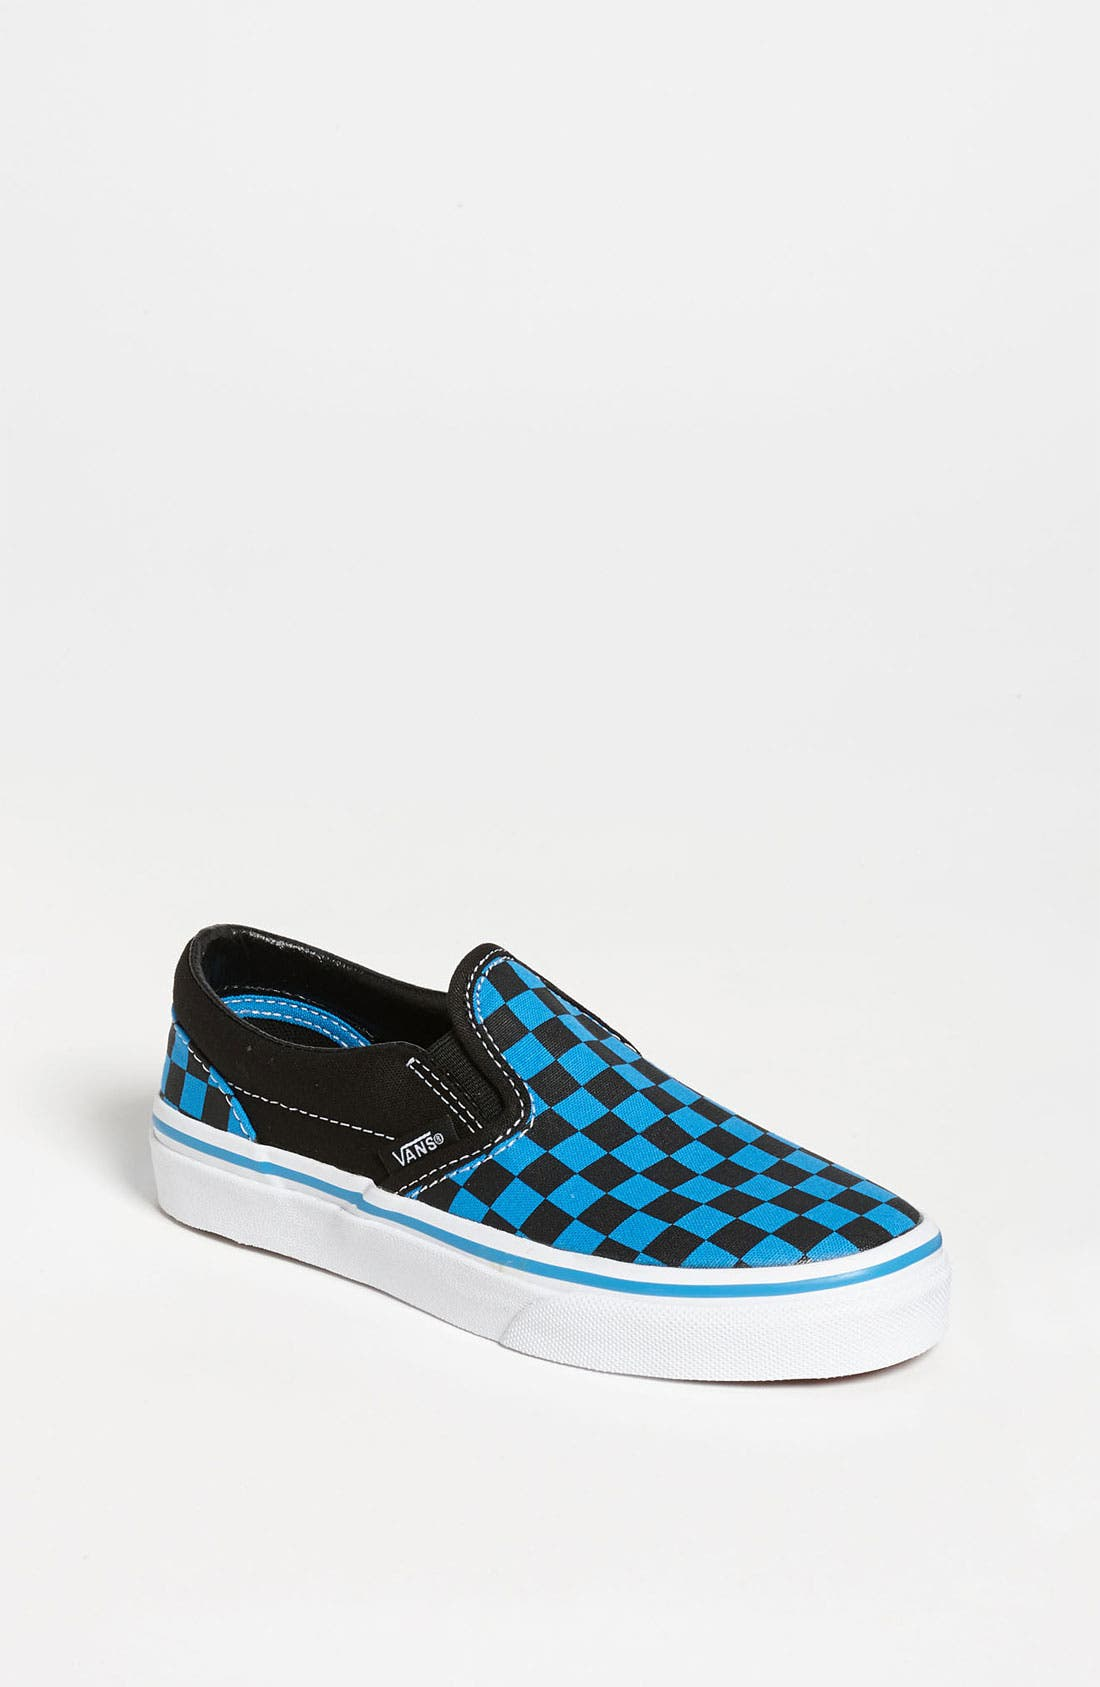 Alternate Image 1 Selected - Vans 'Classic' Slip-On (Toddler & Little Kid)